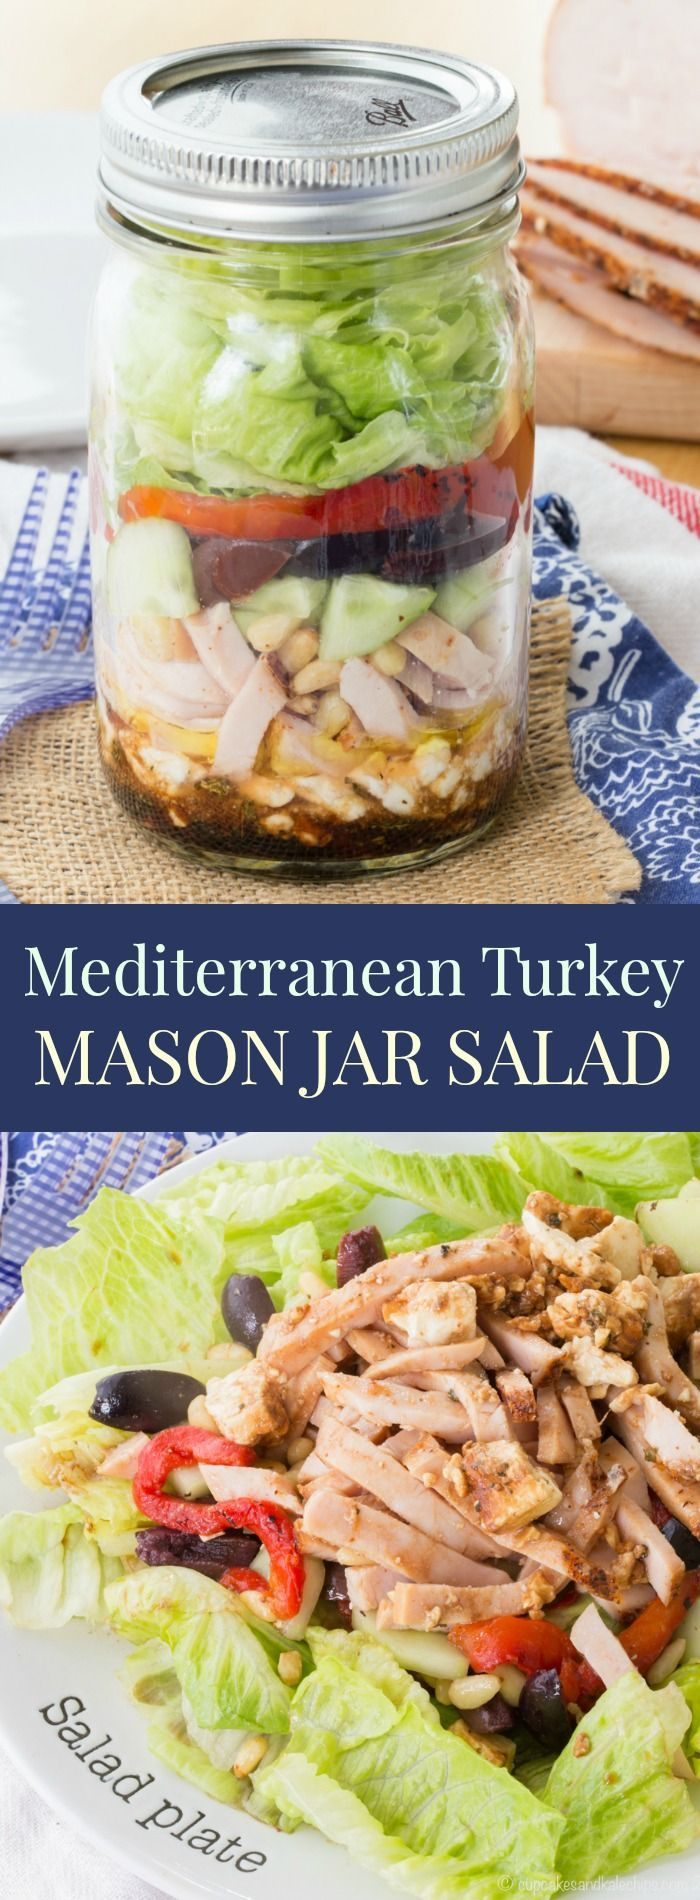 Mediterranean Turkey Mason Jar Salad - layer a simple salad dressing, feta cheese, turkey, veggies, and more for an easy and portable lunch recipe with /jennieorecipes/. Gluten free and low carb. #ad | http://cupcakesandkalechips.com